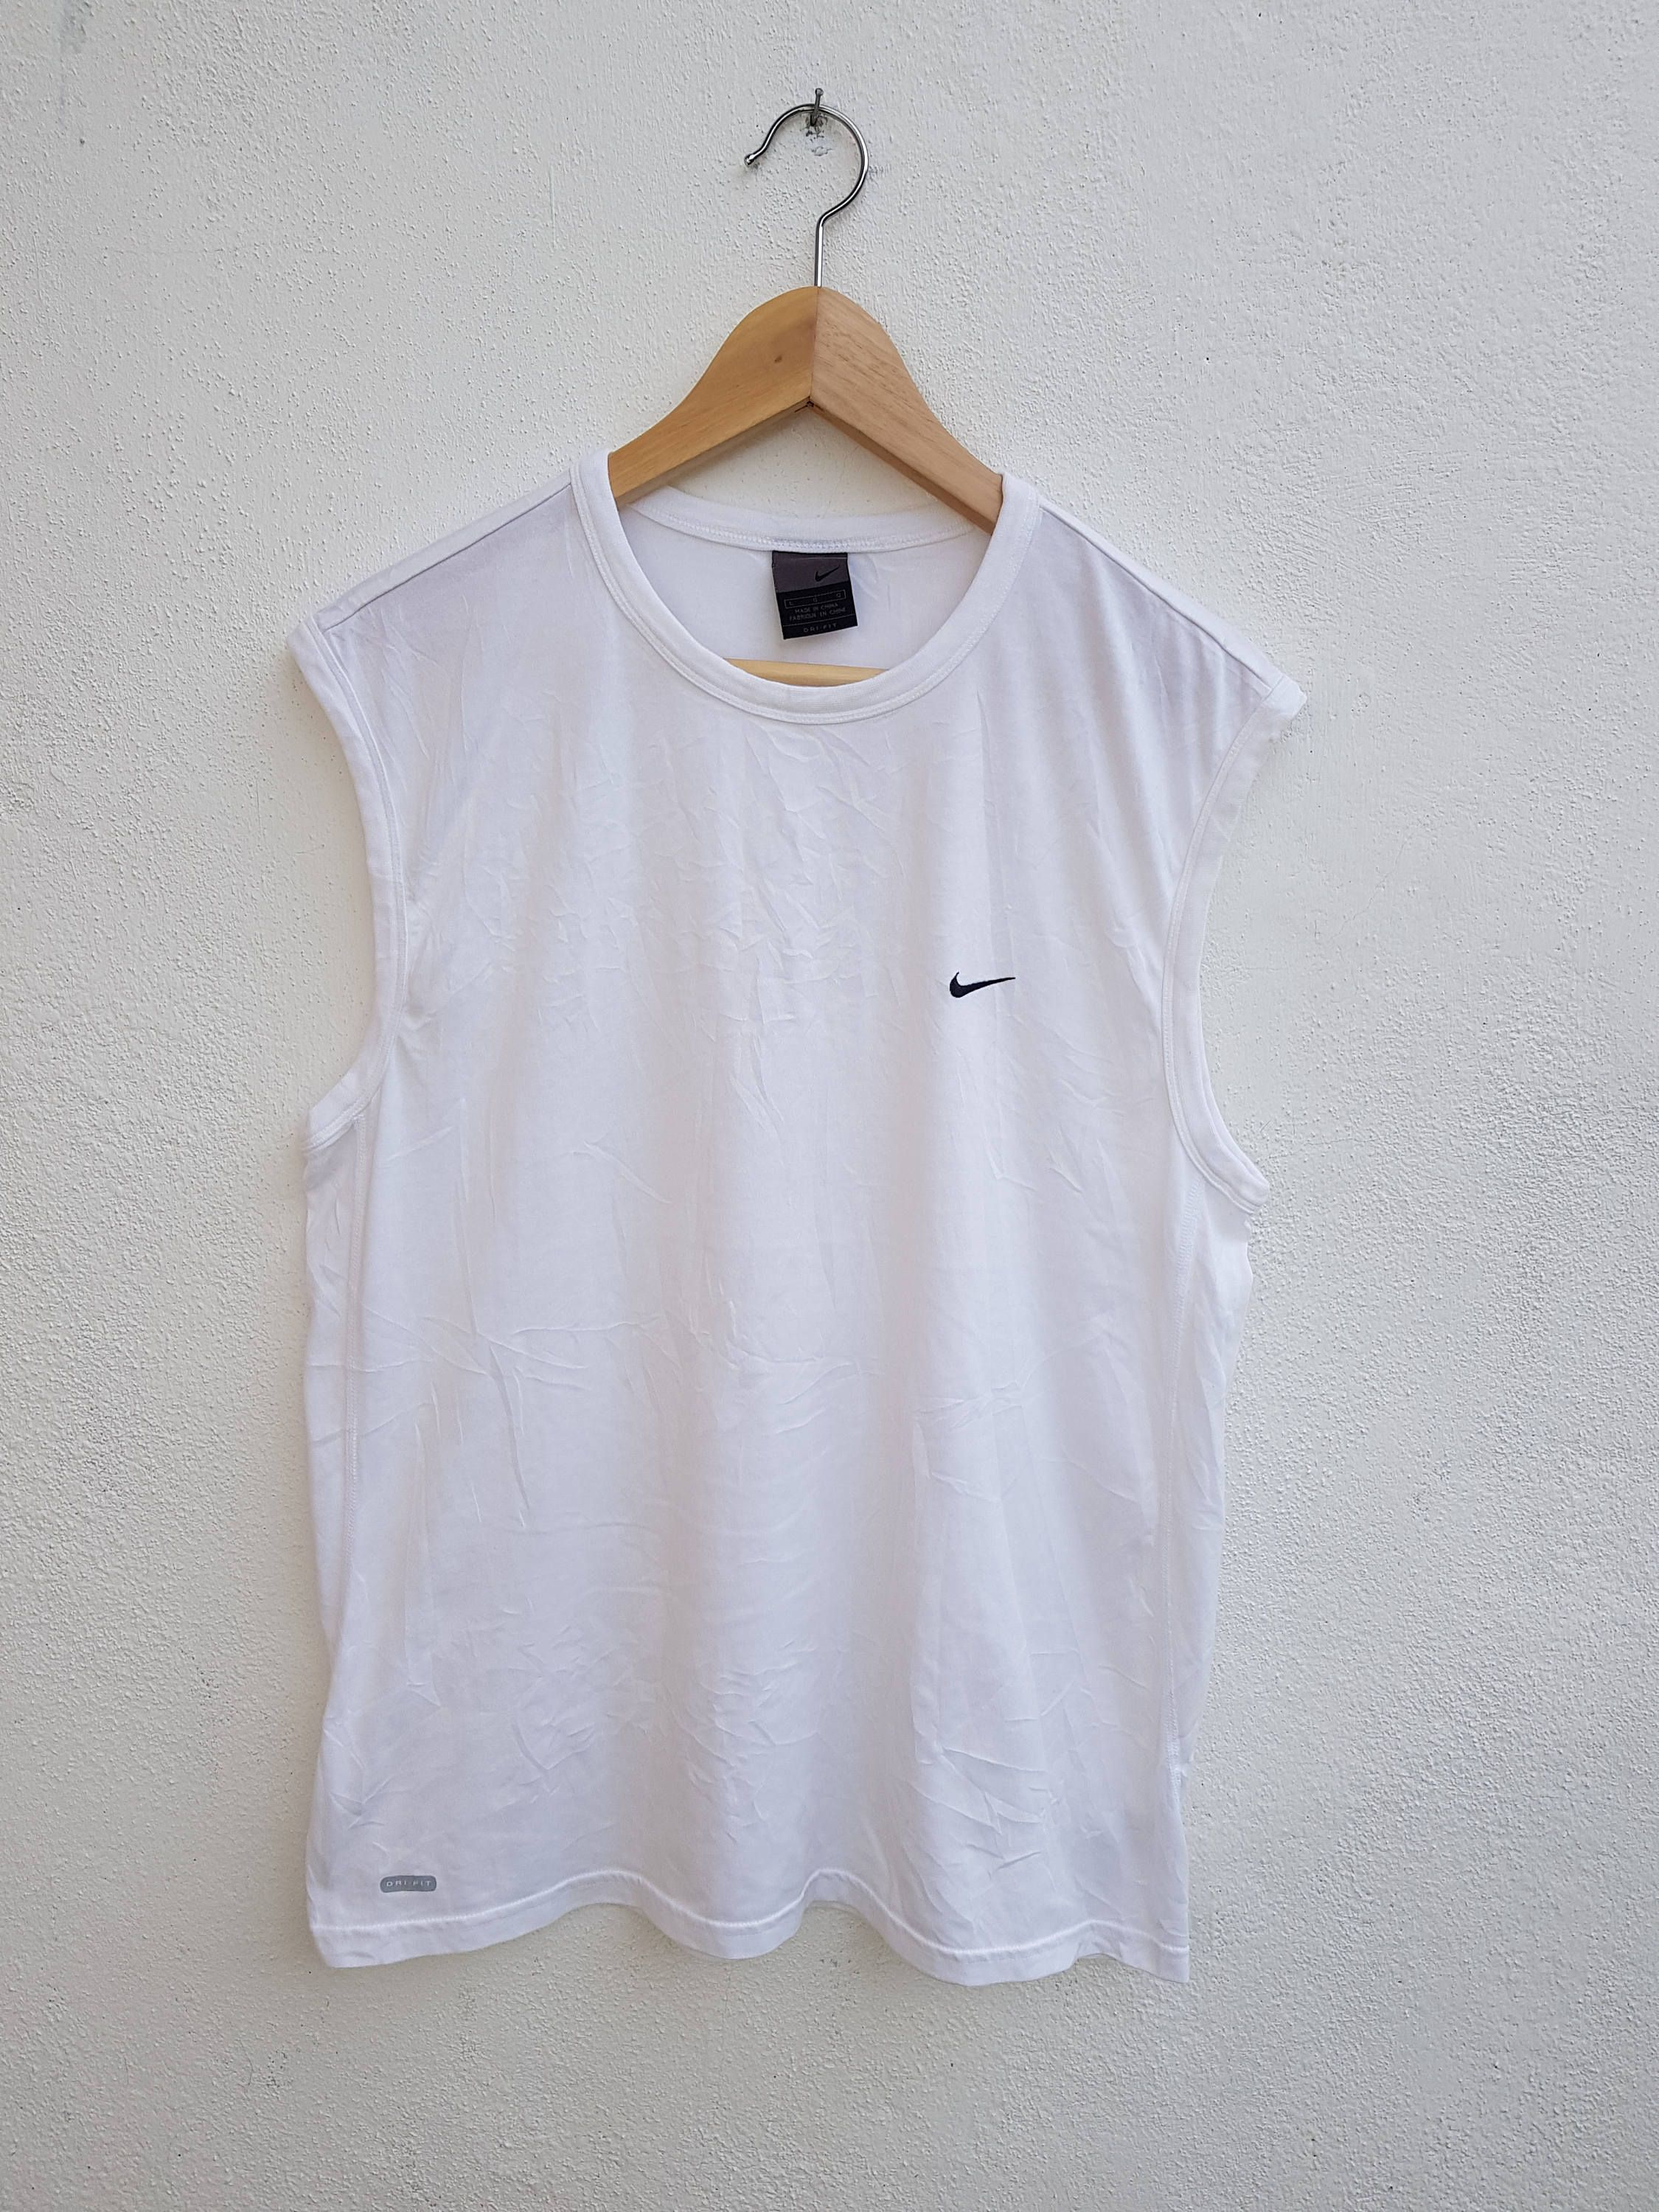 ae524299 Vintage 90s Nike Swoosh Embroidered Small Logo Basic Sportswear Tanks Tops  Shirt Size L by BubaGumpBudu on Etsy